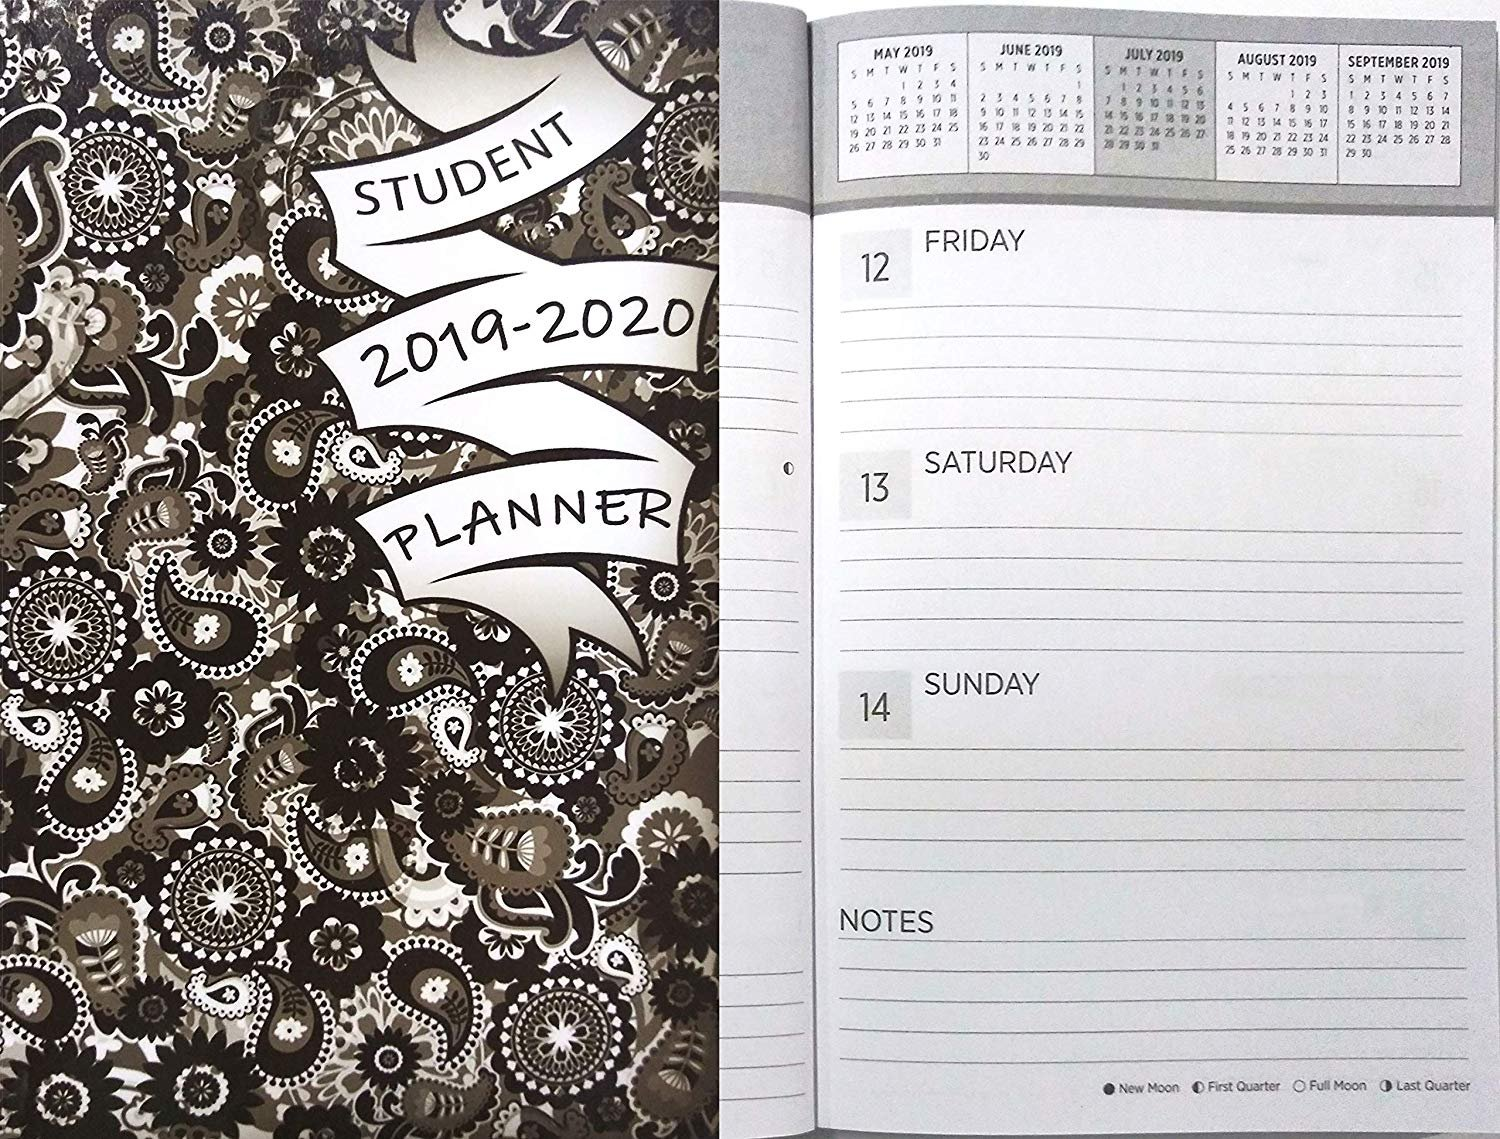 2019-2020 Student Academic Weekly Planner Calendar (Paisley Soft Cover - Edition #1)